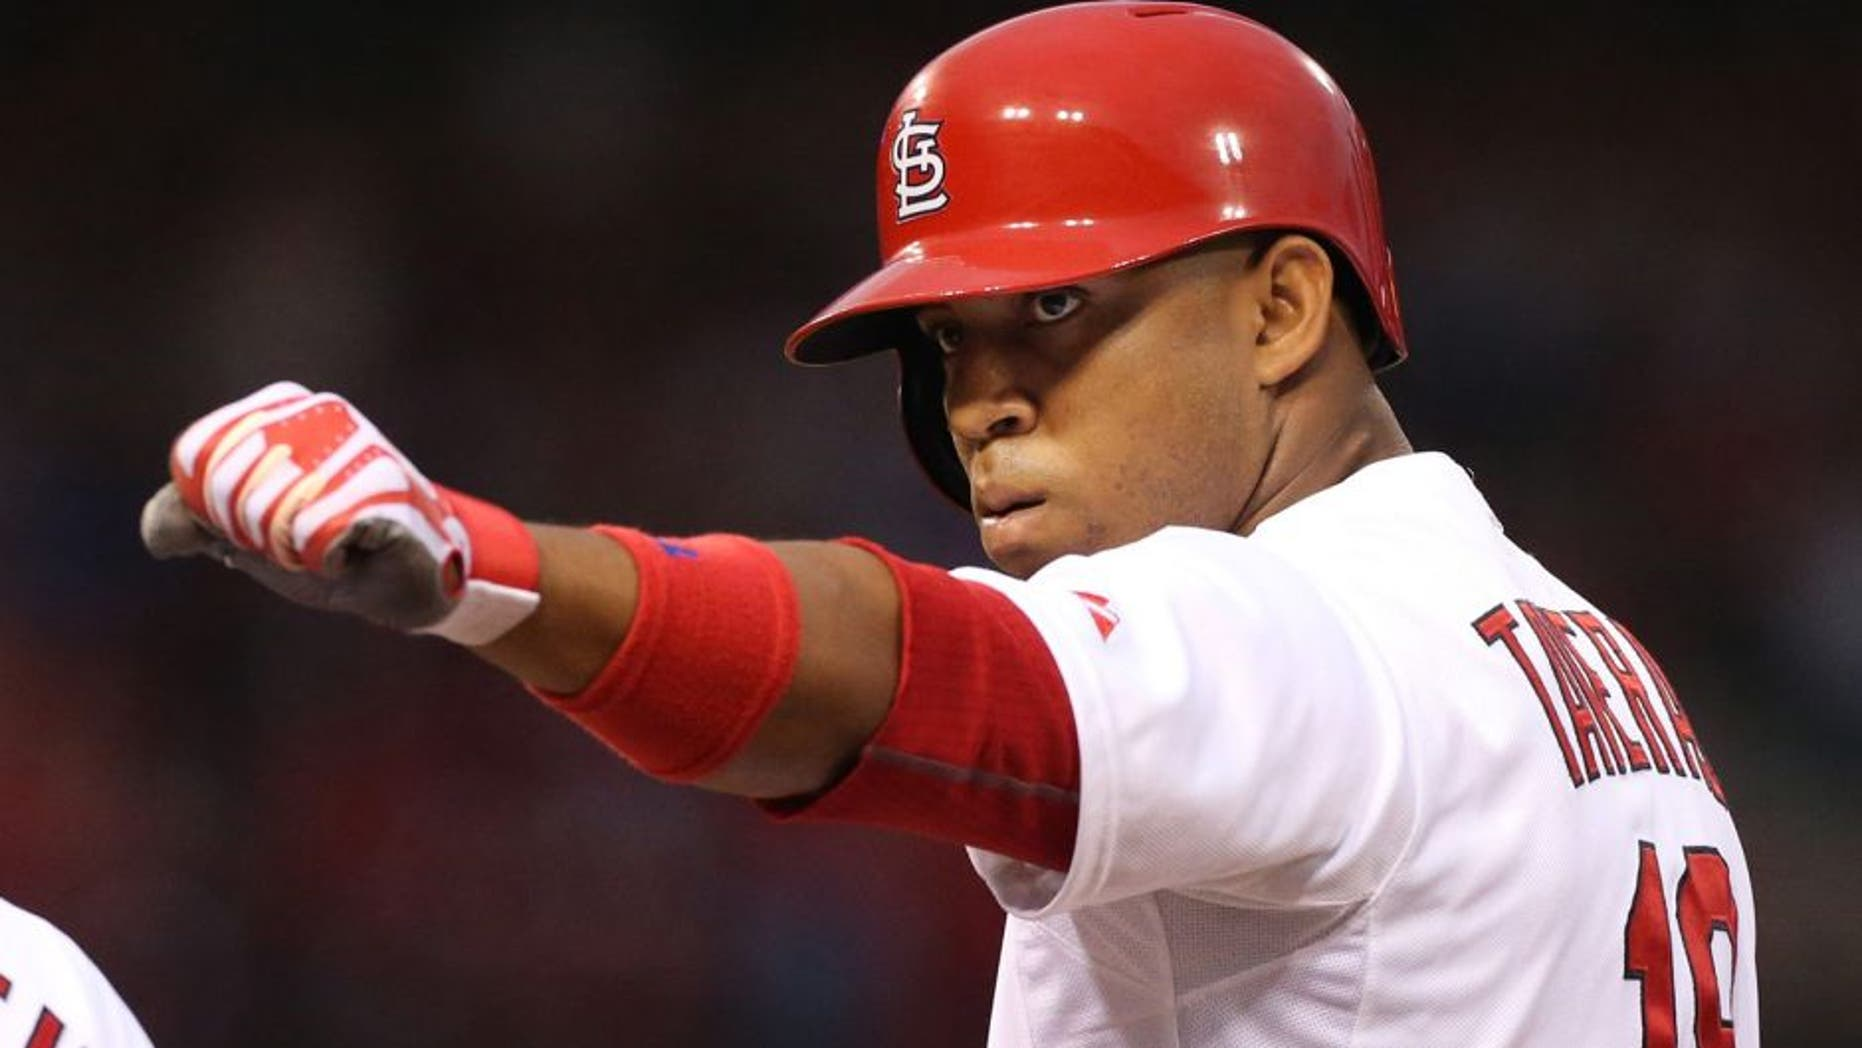 St. Louis Cardinals' Oscar Taveras gestures to teammates in the dugout after driving in a run with a single in first inning action during a baseball game between the St. Louis Cardinals and the Boston Red Sox on Thursday, Aug. 7, 2014, at Busch Stadium in St. Louis. (AP Photo/St. Louis Post-Dispatch, Chris Lee) EDWARDSVILLE INTELLIGENCER OUT; THE ALTON TELEGRAPH OUT